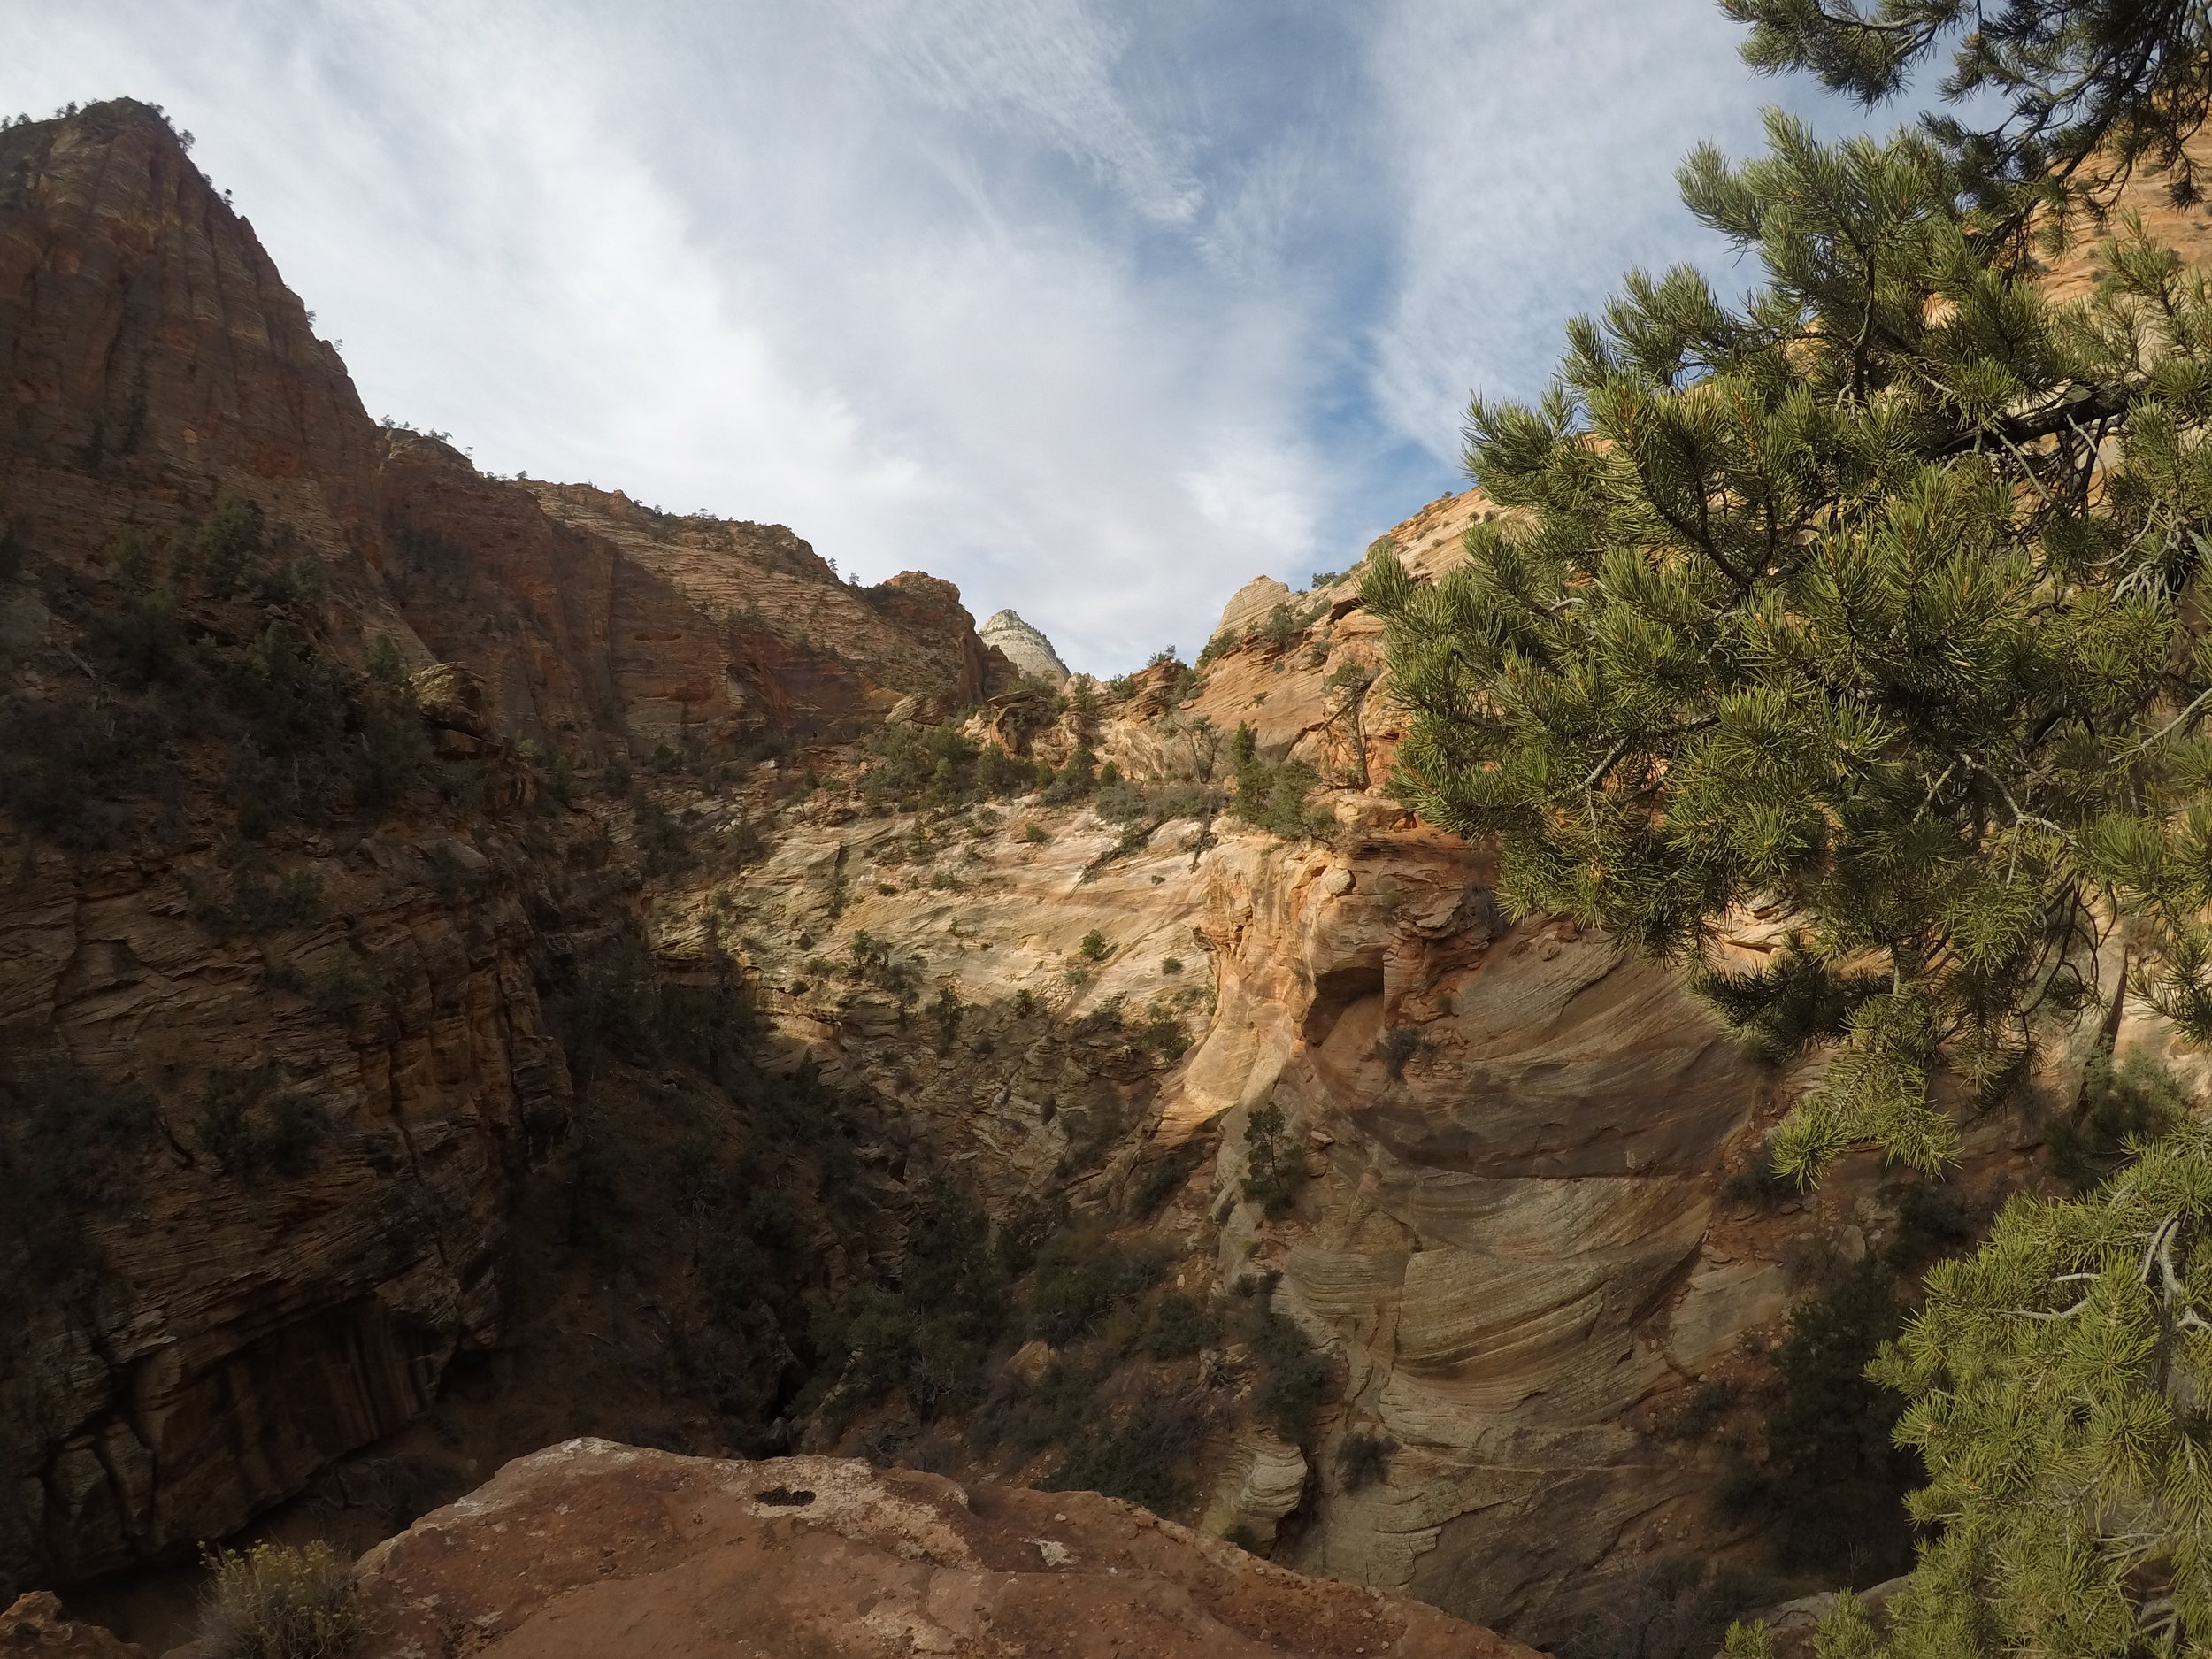 Along the trail, there are great views into Pine Creek Canyon.